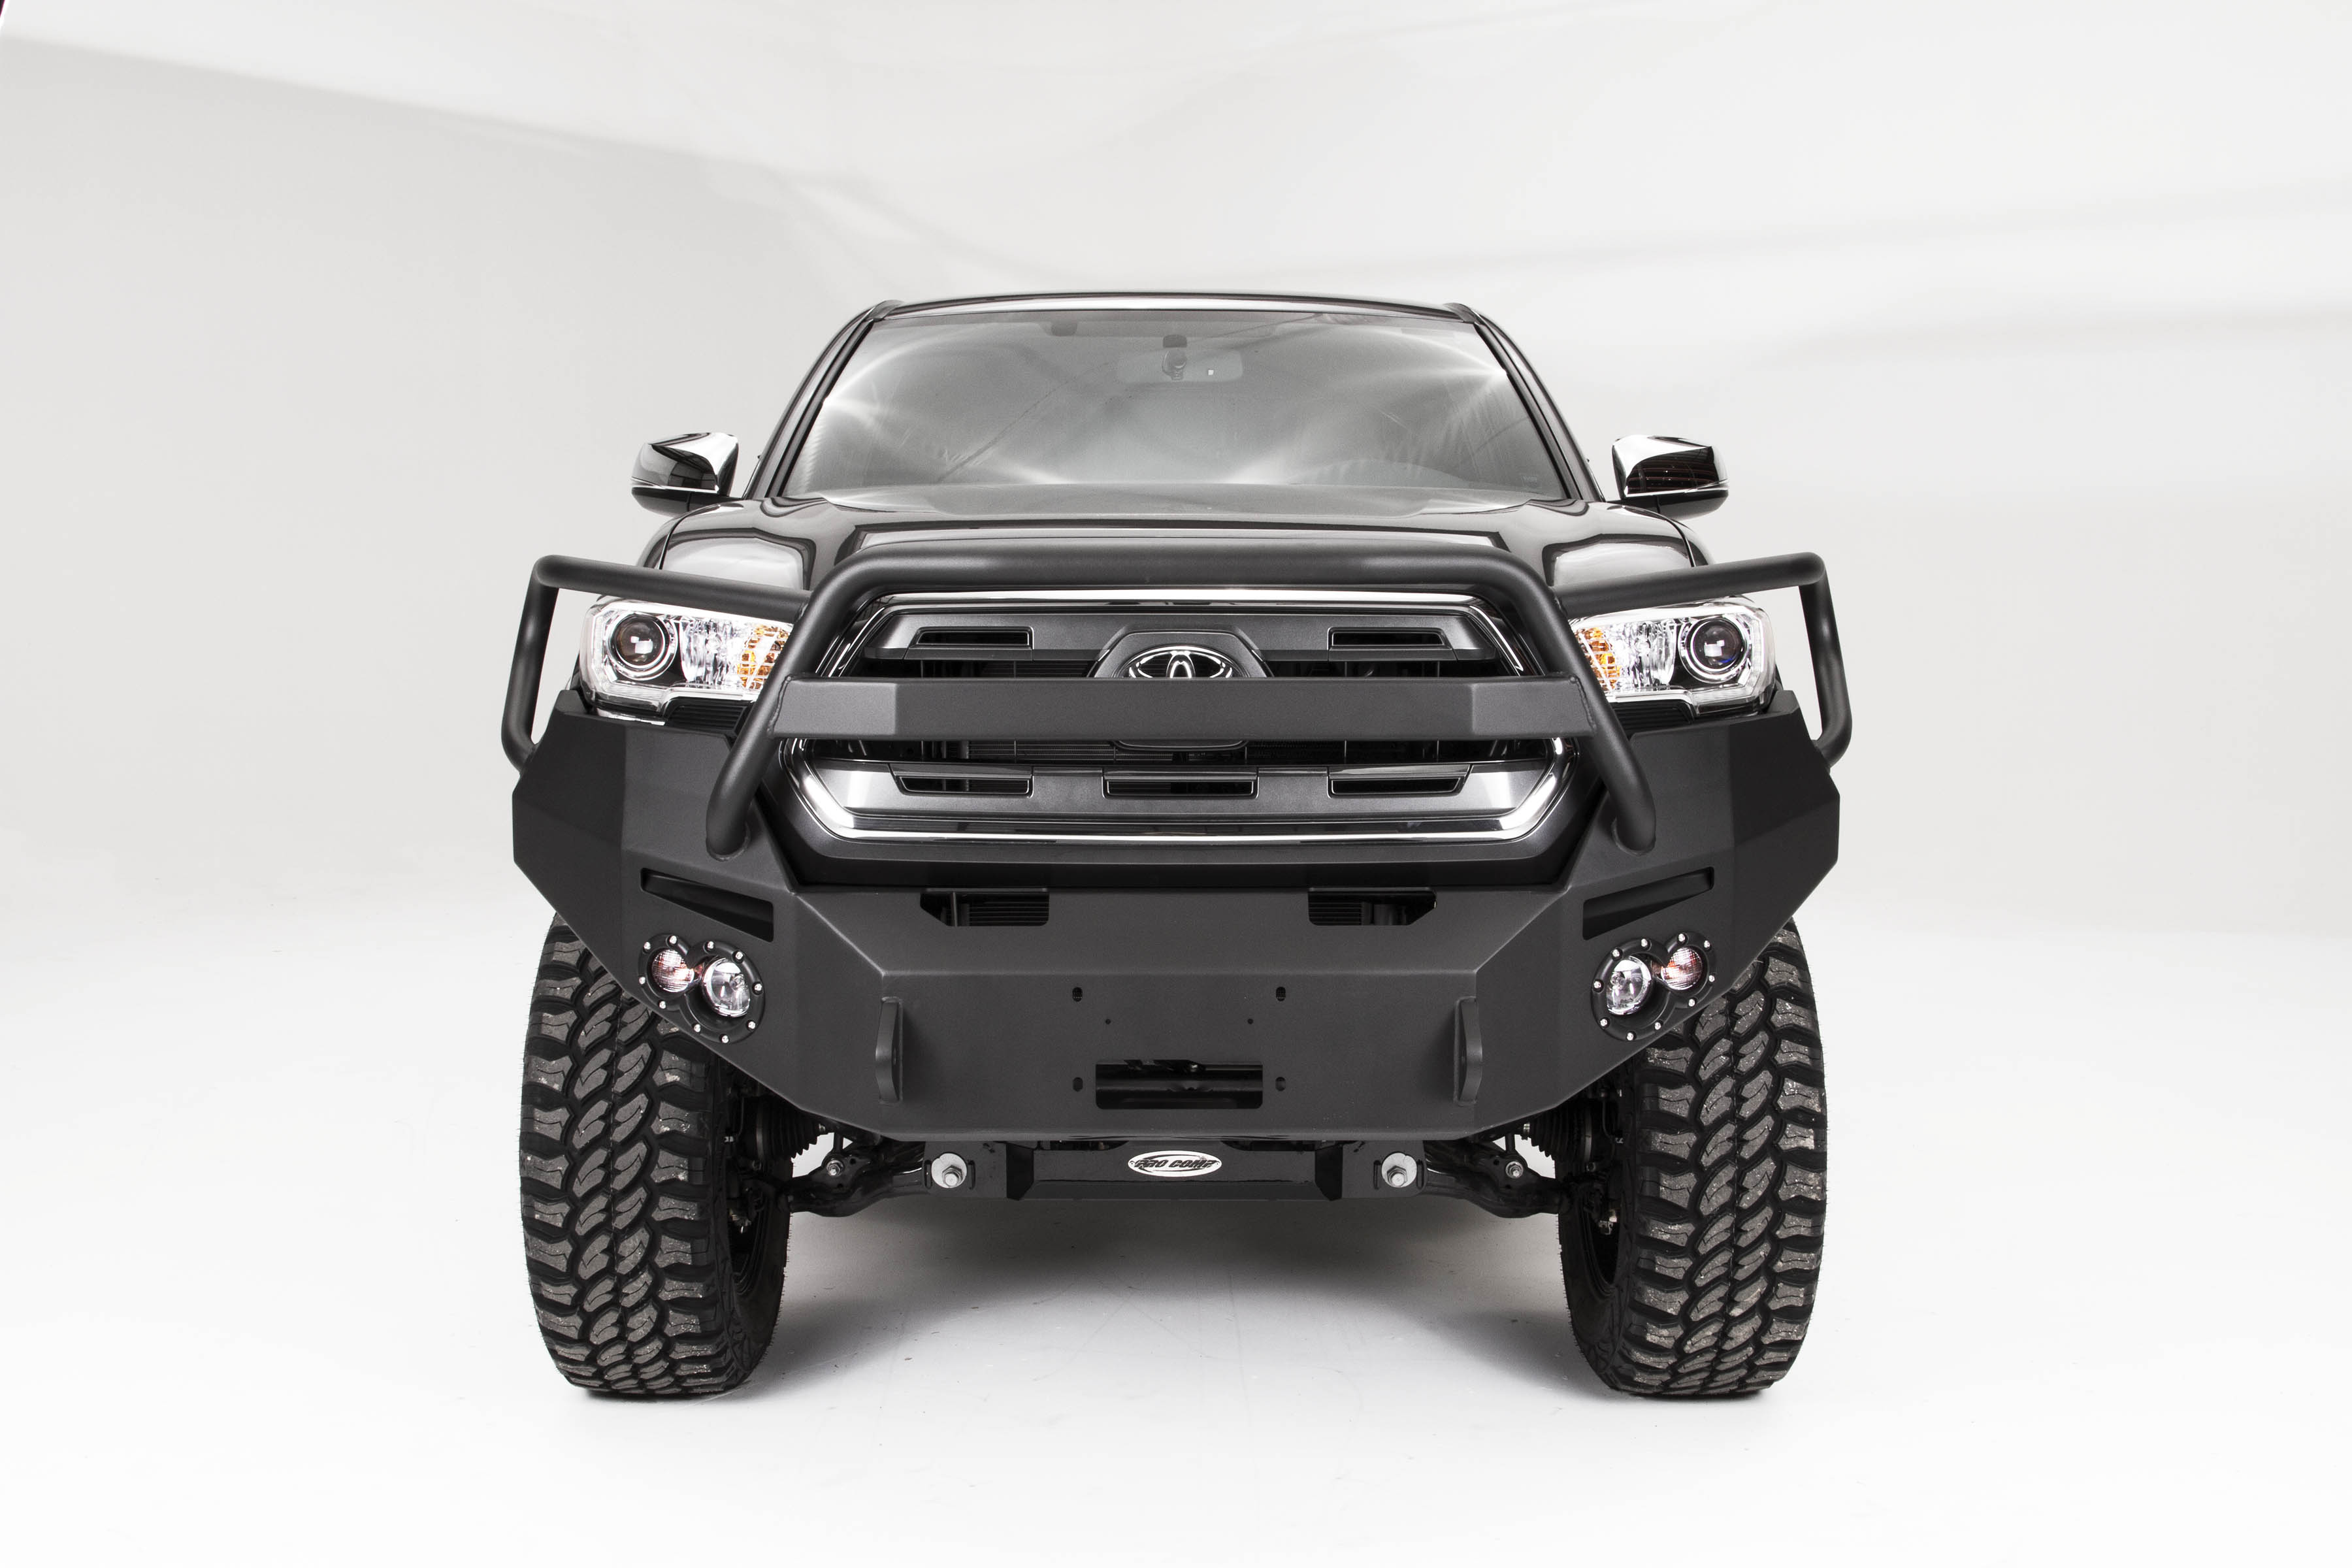 Fab Fours Premium Winch Bumper W/ Full Guard 2016+ Tacoma